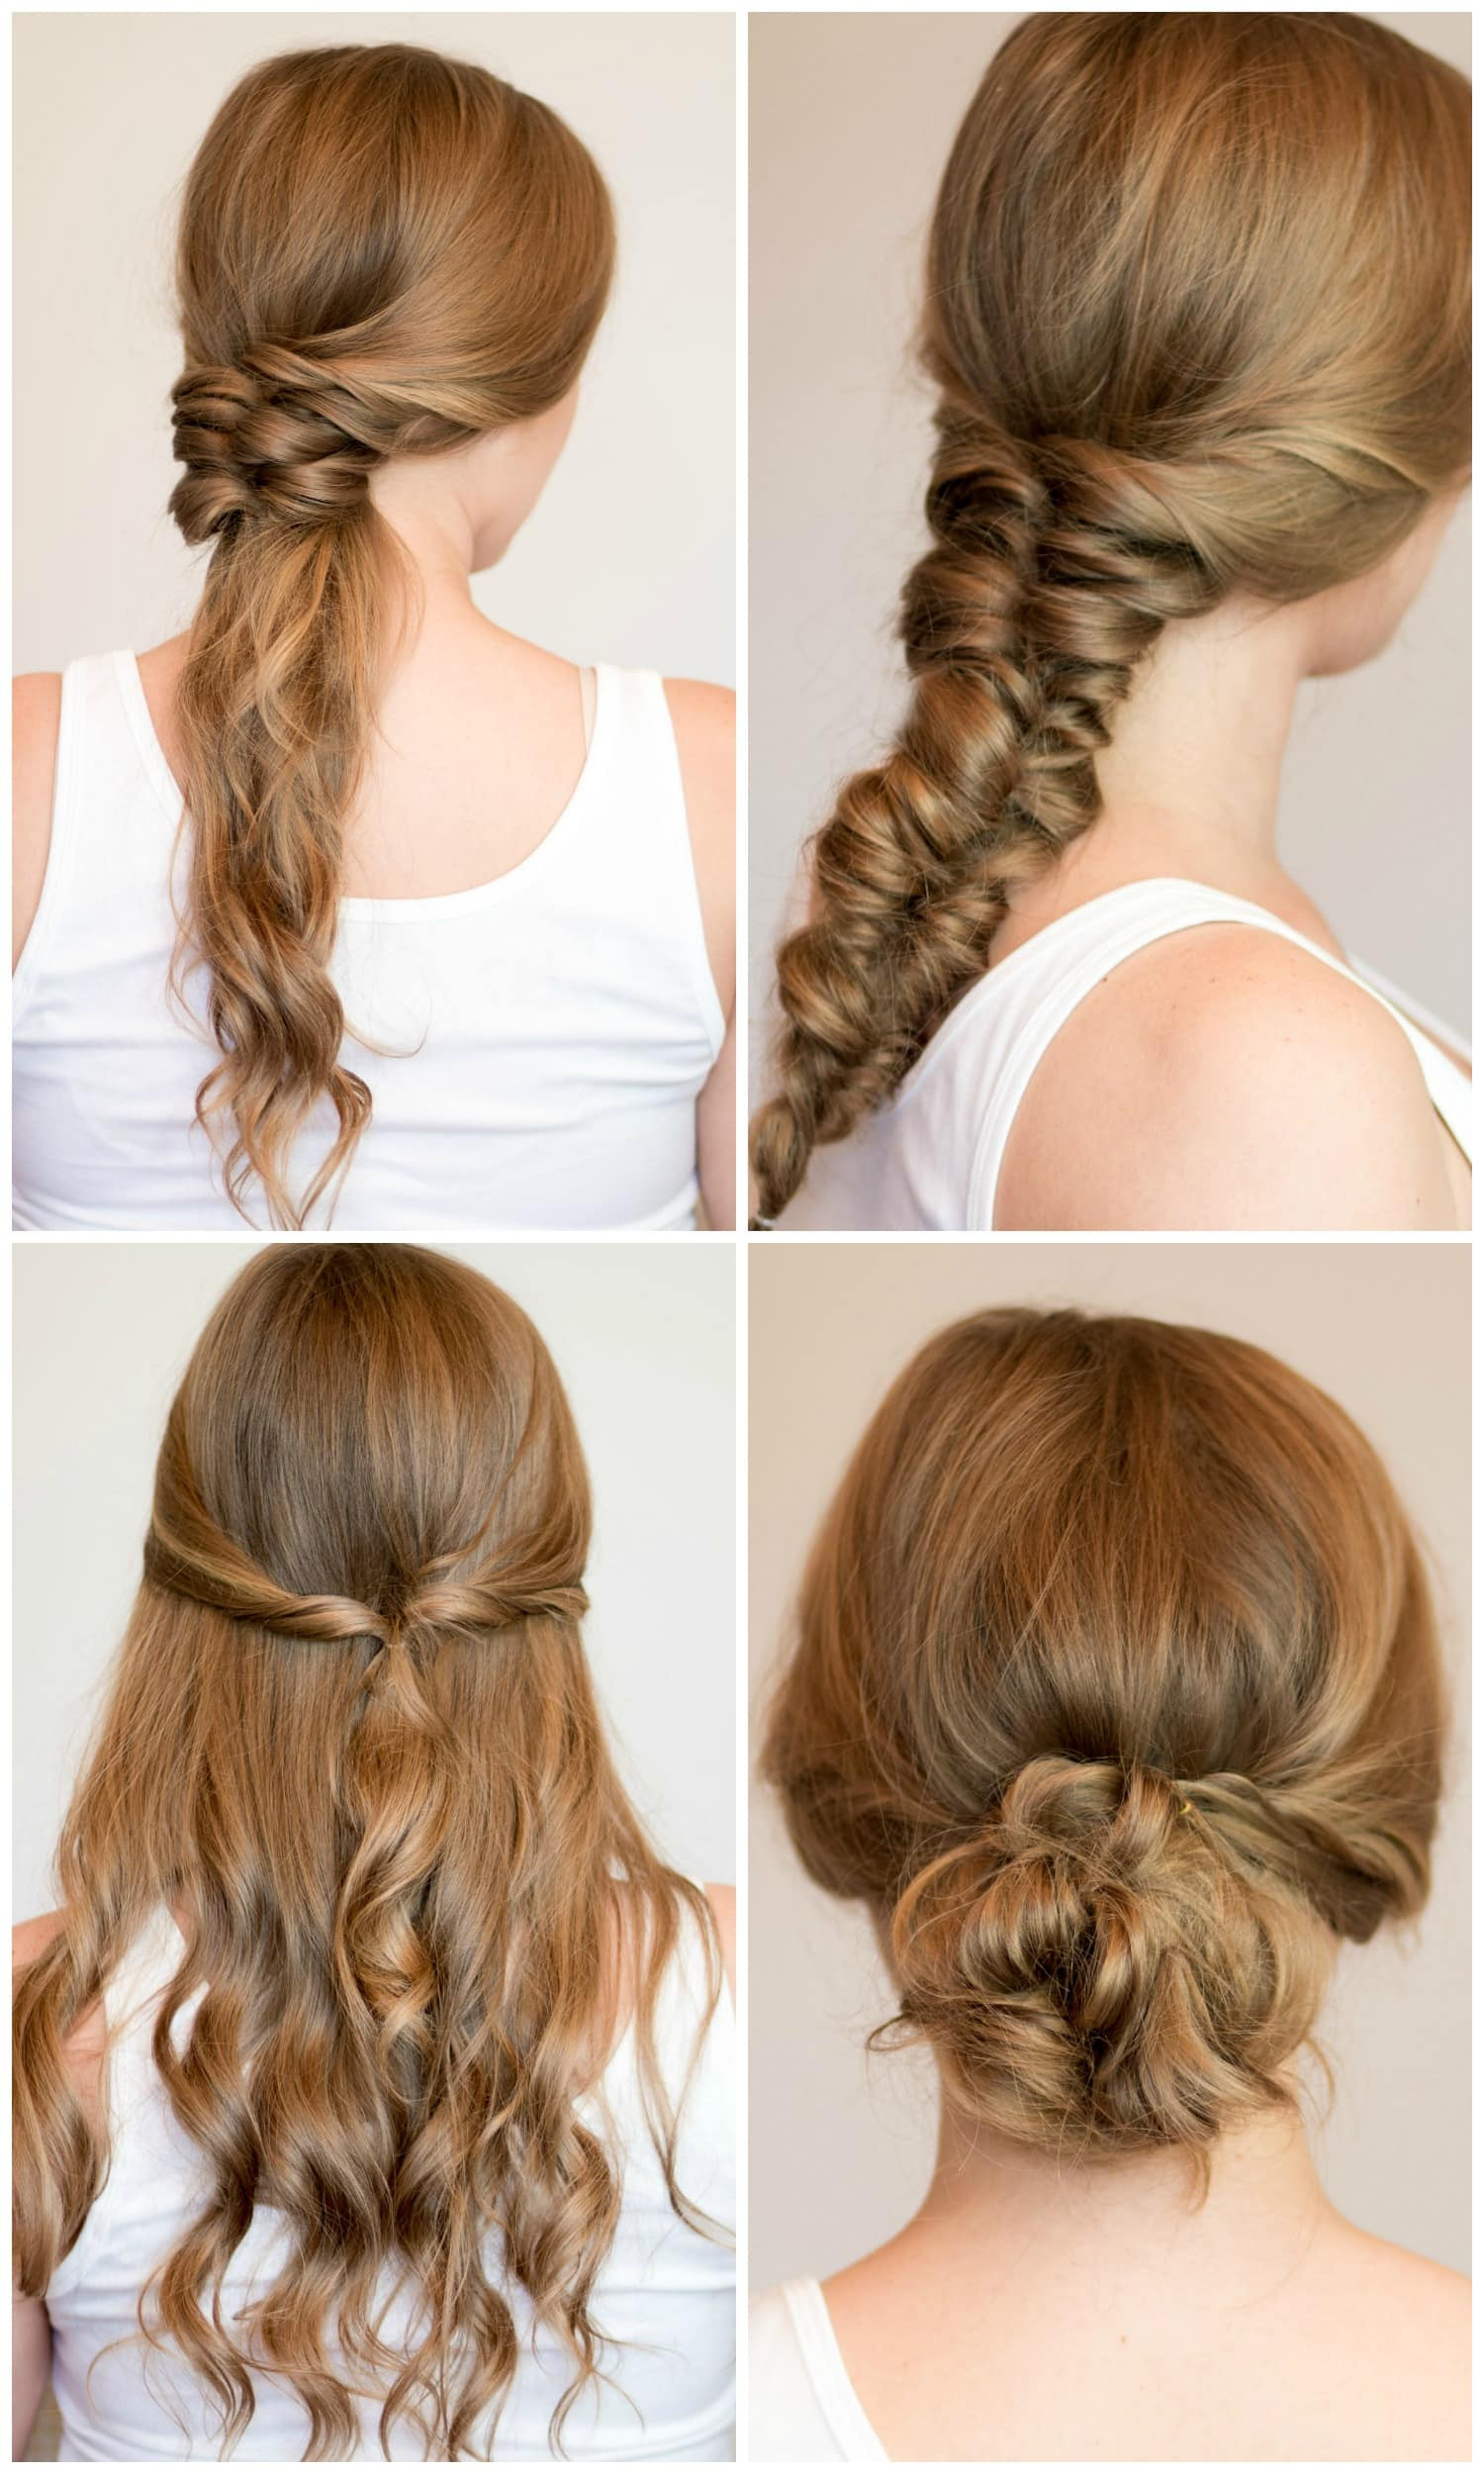 Best ideas about Easy Hairstyle Video . Save or Pin Easy Heatless Hairstyles for Long Hair Now.